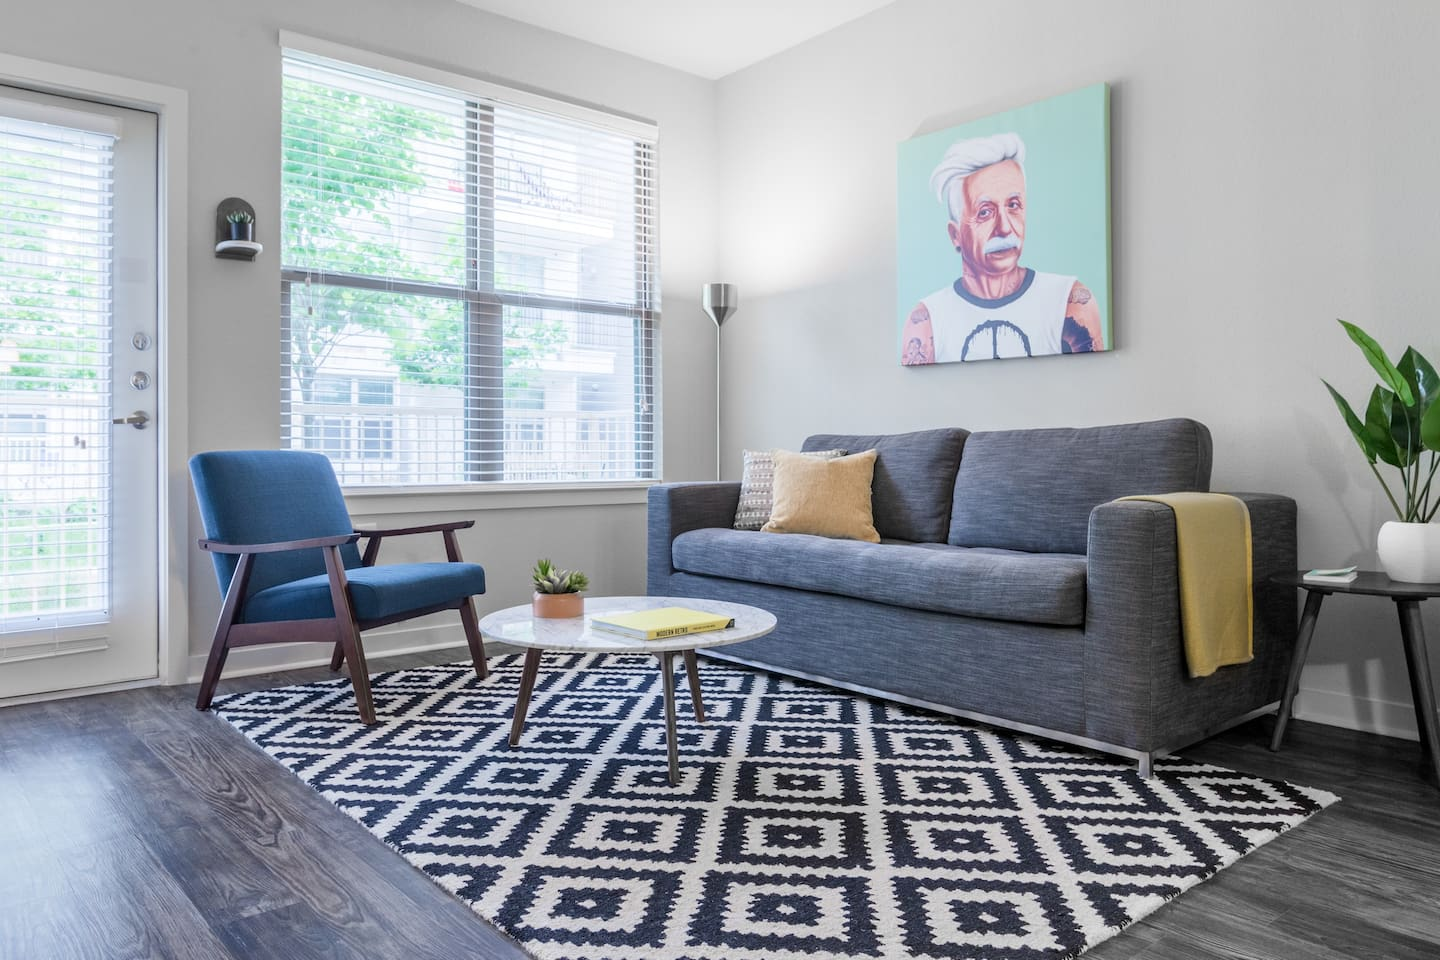 Spacious, 1-bedroom suite in East Austin - steps from East 6th